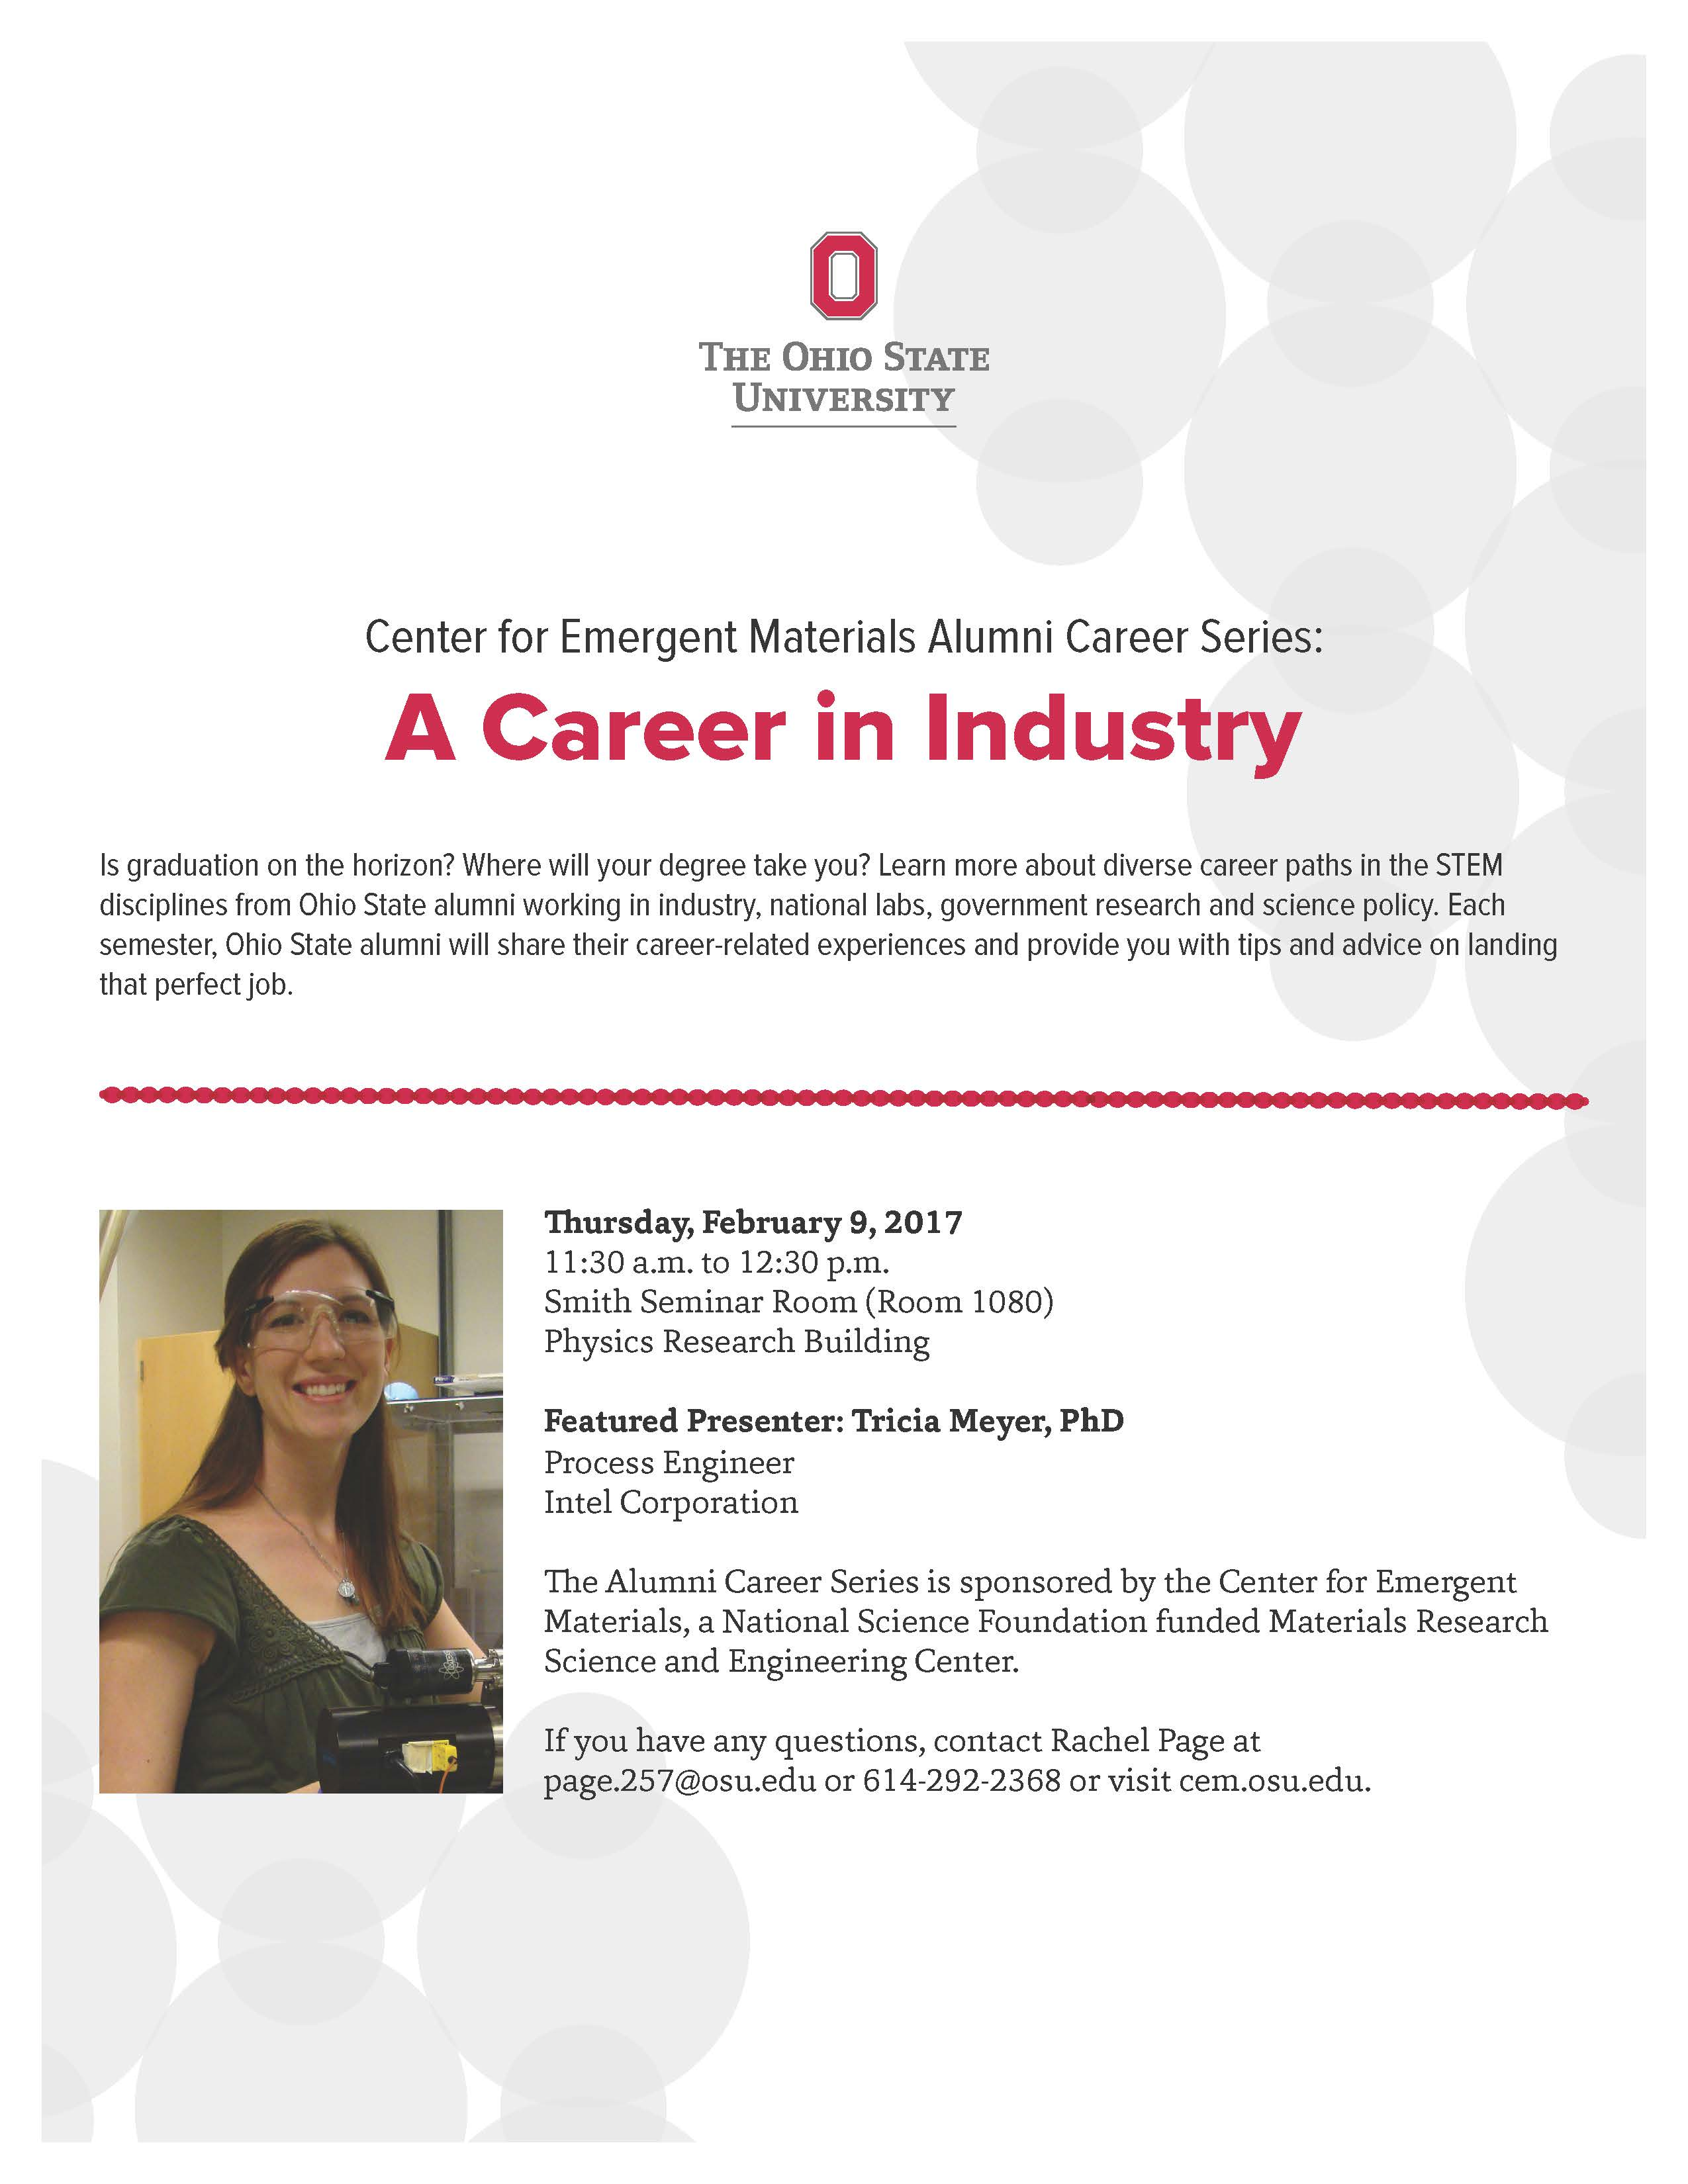 cem-alumni-career-series-tricia-meyer-intel